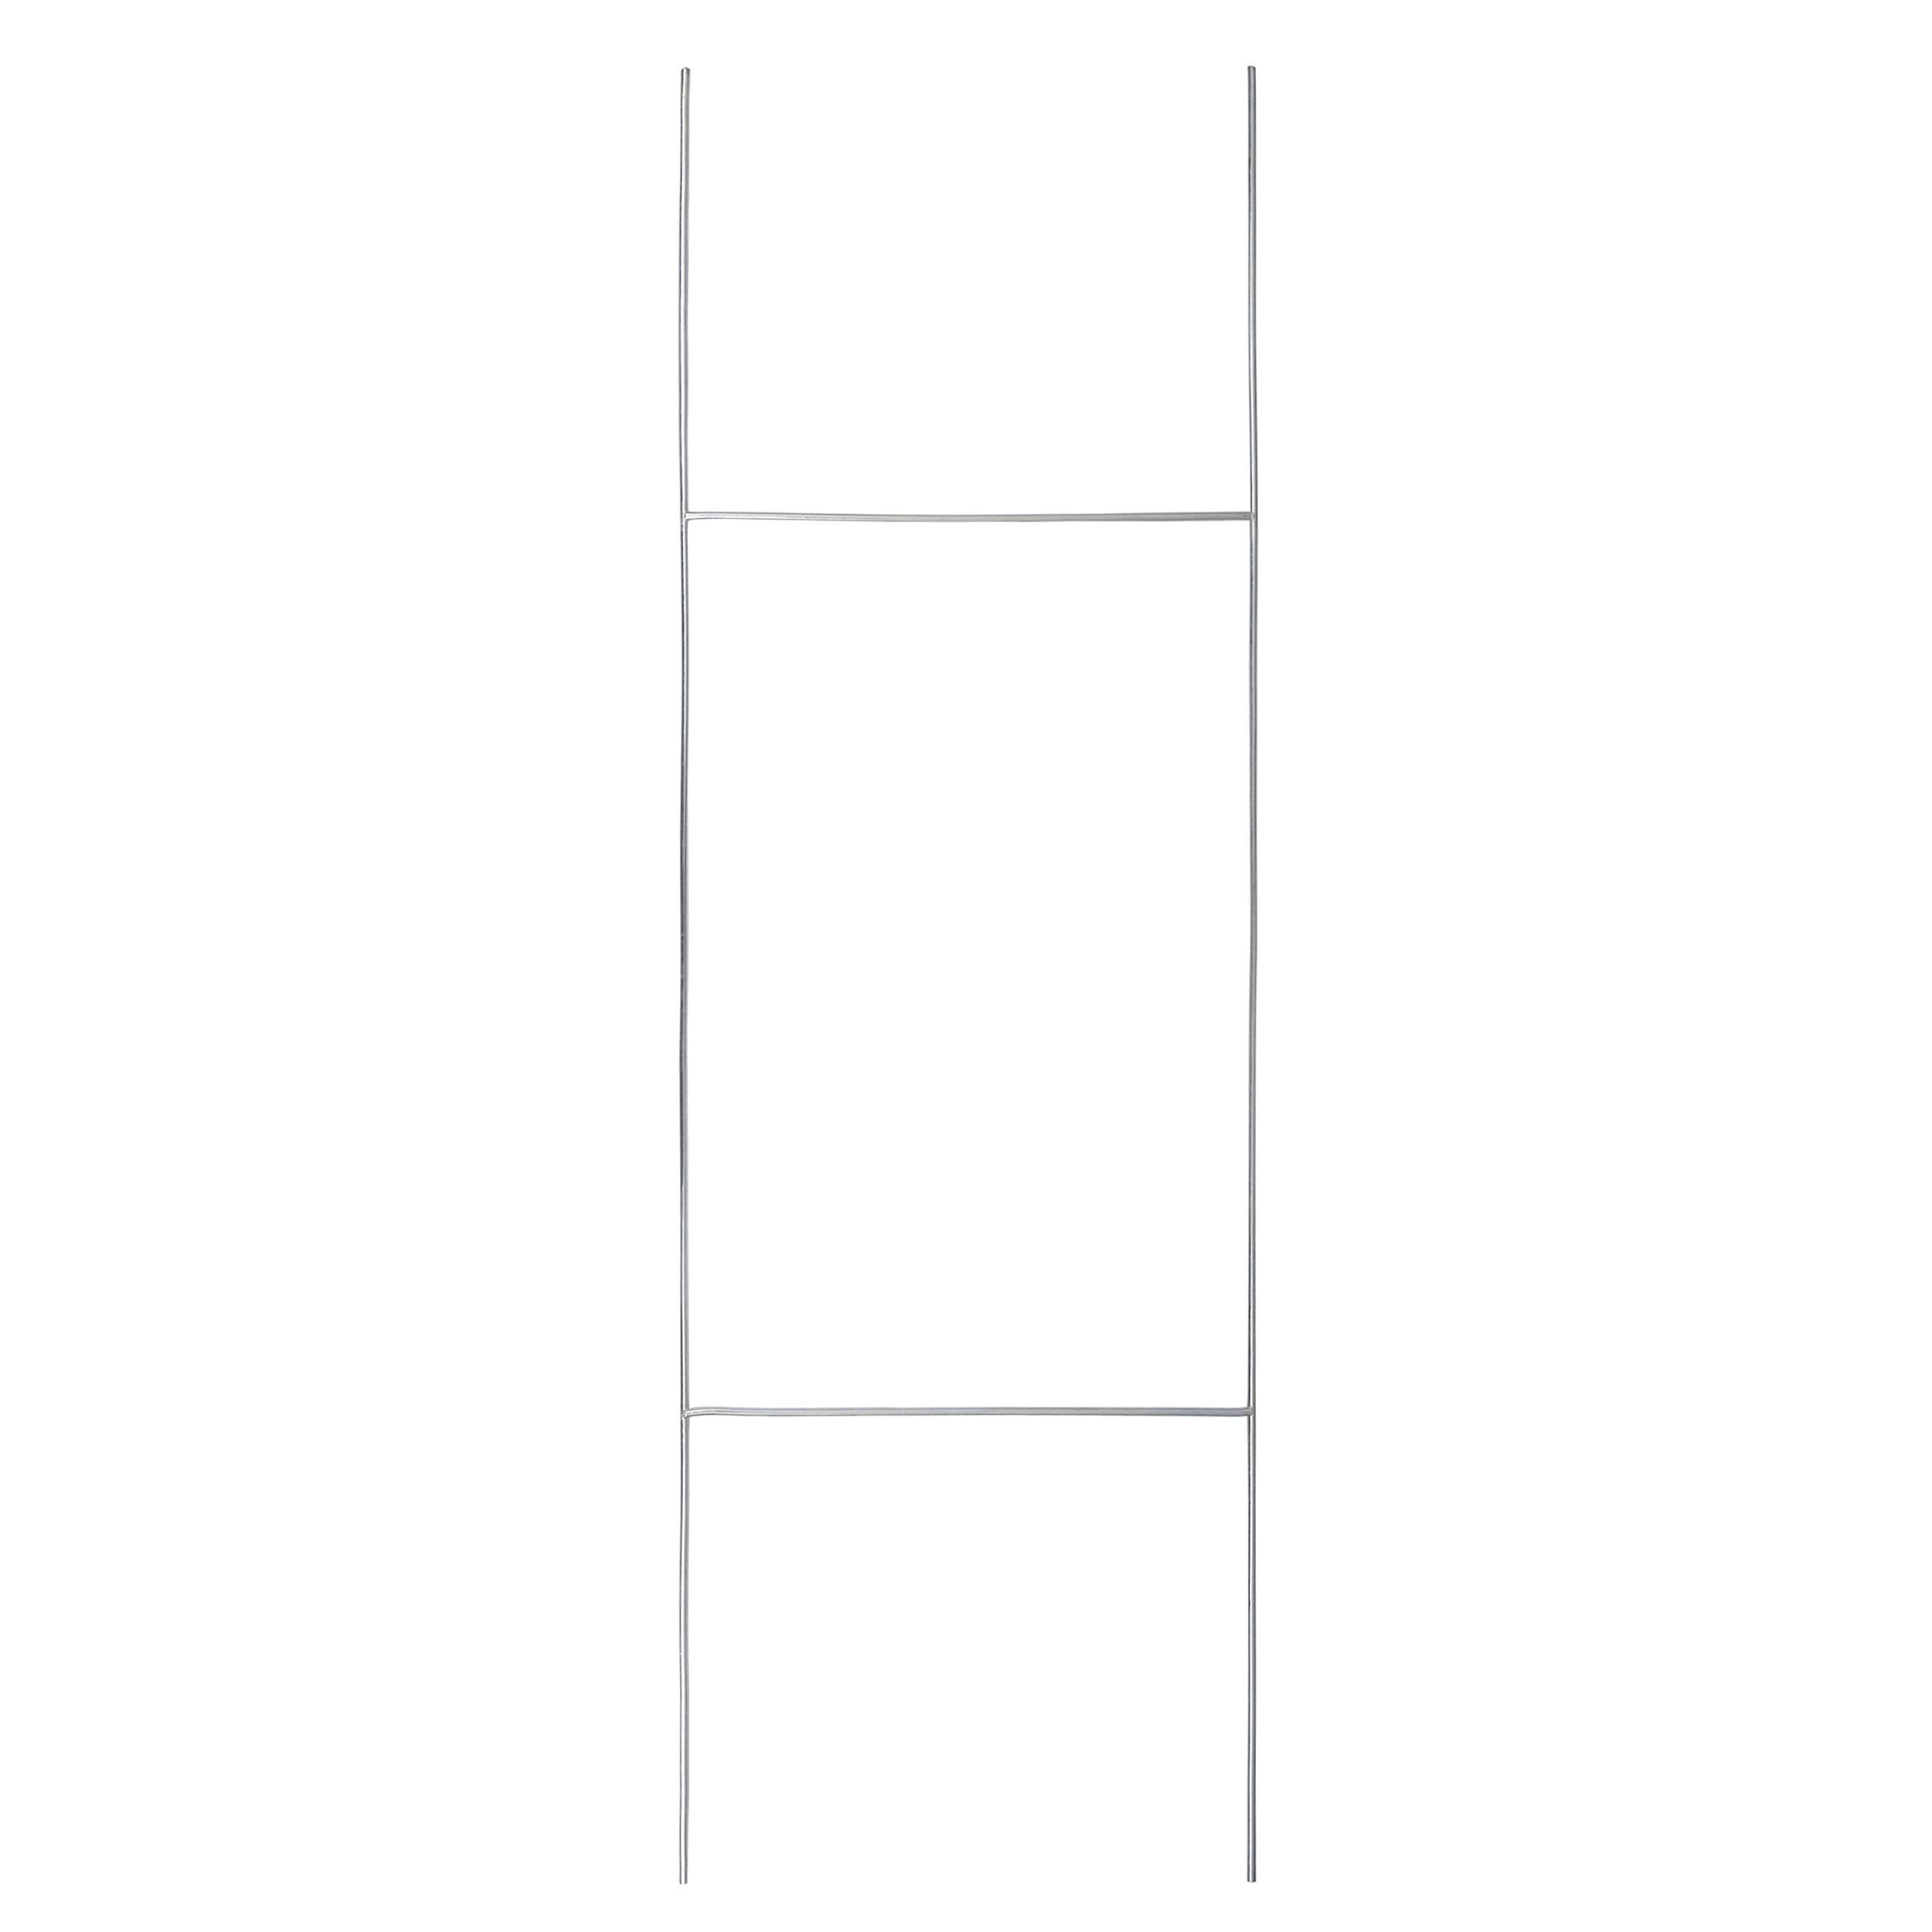 TN Supplies Yard Sign H Stakes 30''x10'' - Wire Stake for Yard Signs, Metal Frame Lawn Stands, Outdoor Political Campaign and Real Estate Sign Holder, H Bracket Step Frames, Visibility Signage Holders